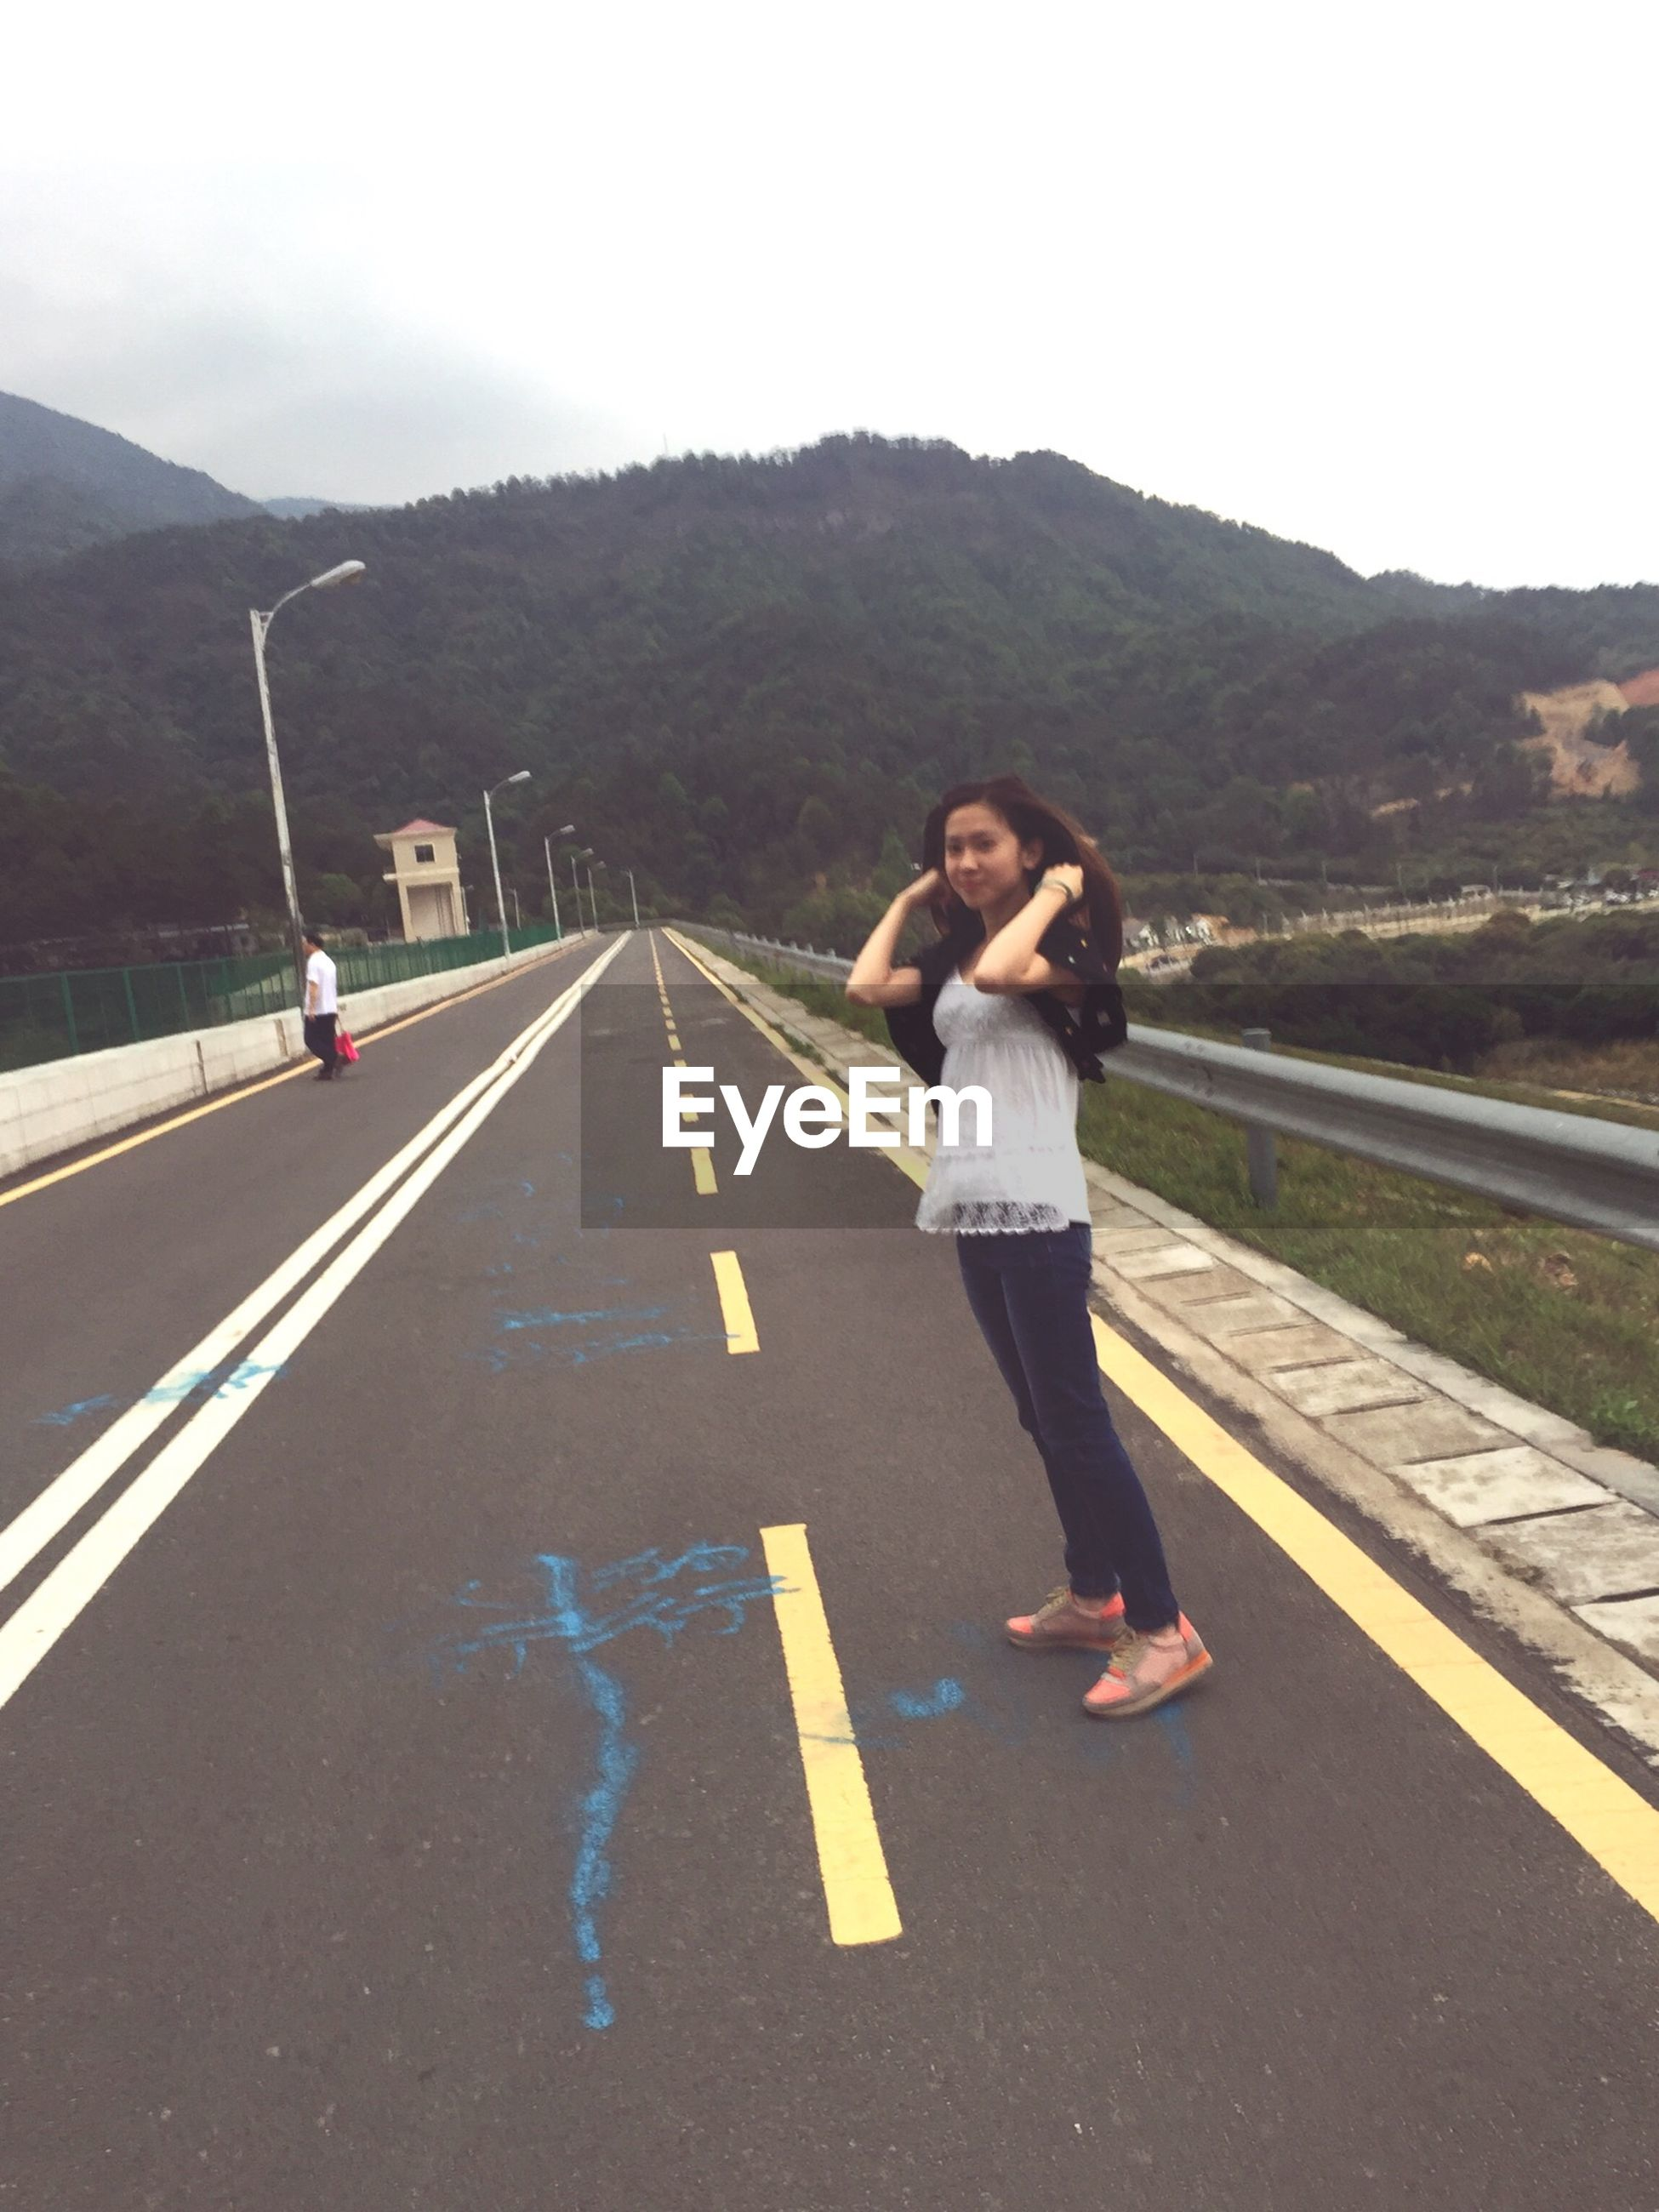 lifestyles, casual clothing, full length, mountain, road, leisure activity, young adult, person, transportation, the way forward, road marking, standing, day, mountain range, front view, street, sky, young men